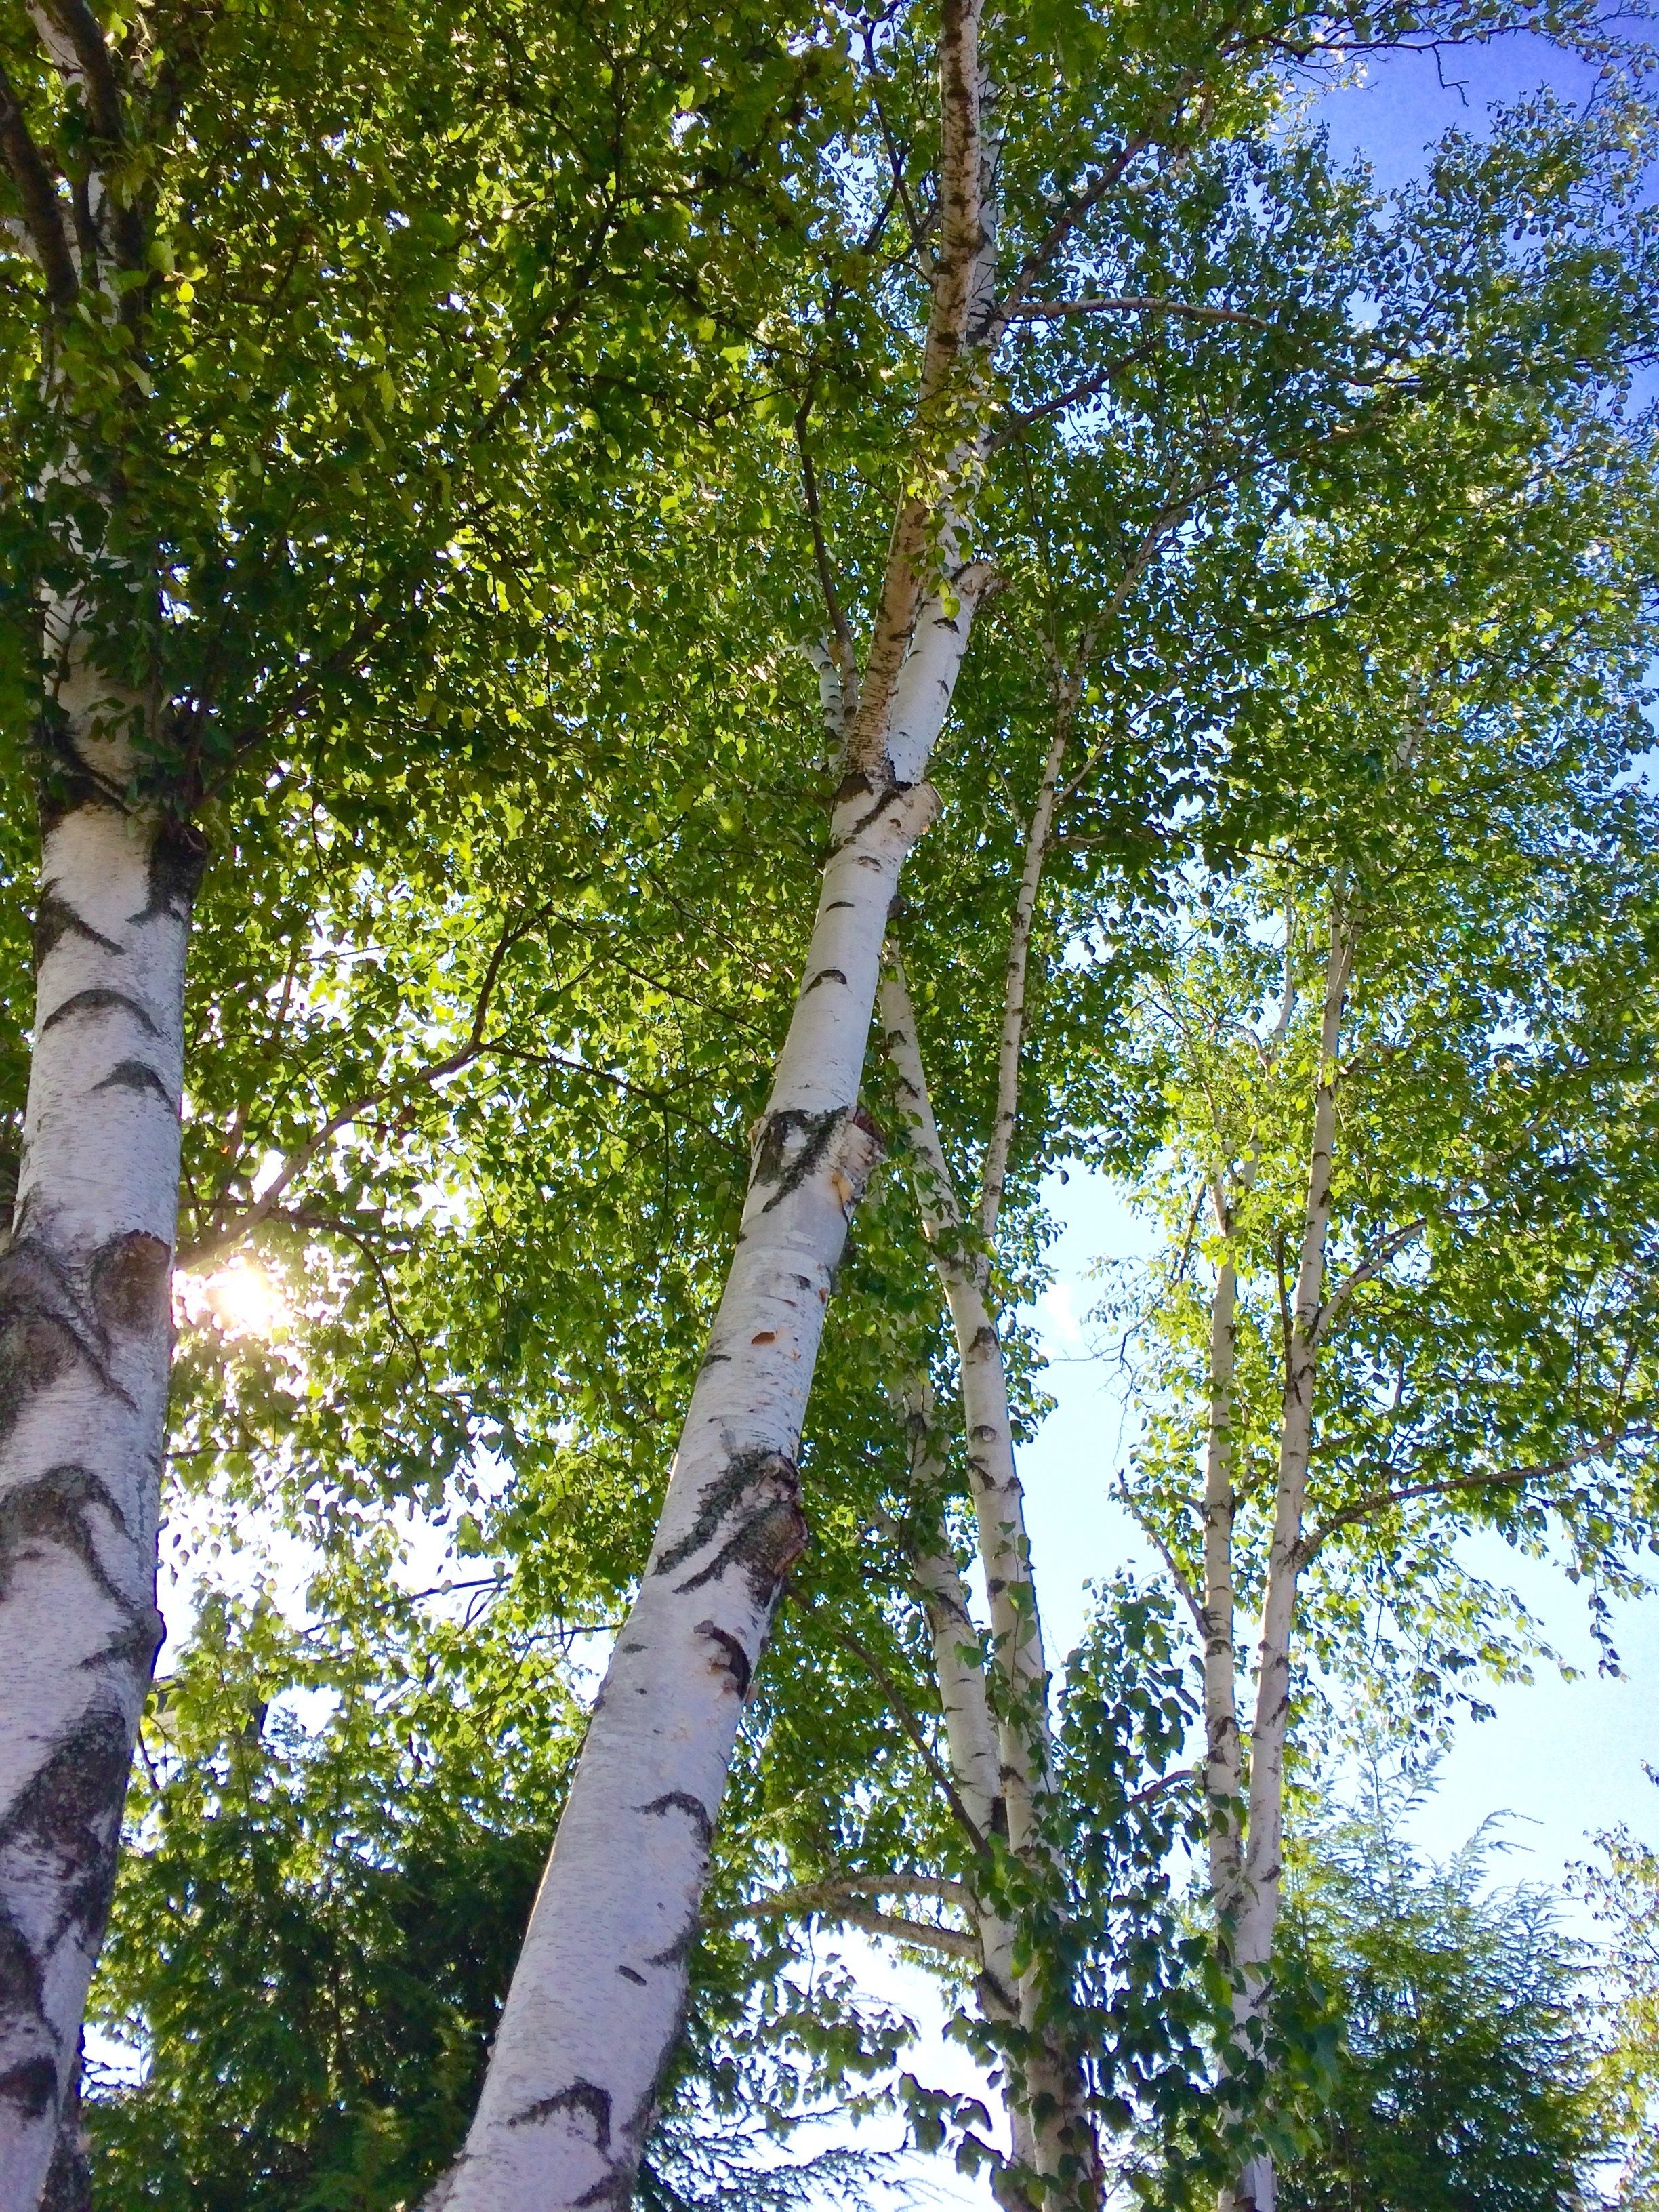 White Birch Tree With Blue Sky And Sun Shining Brightly Through The